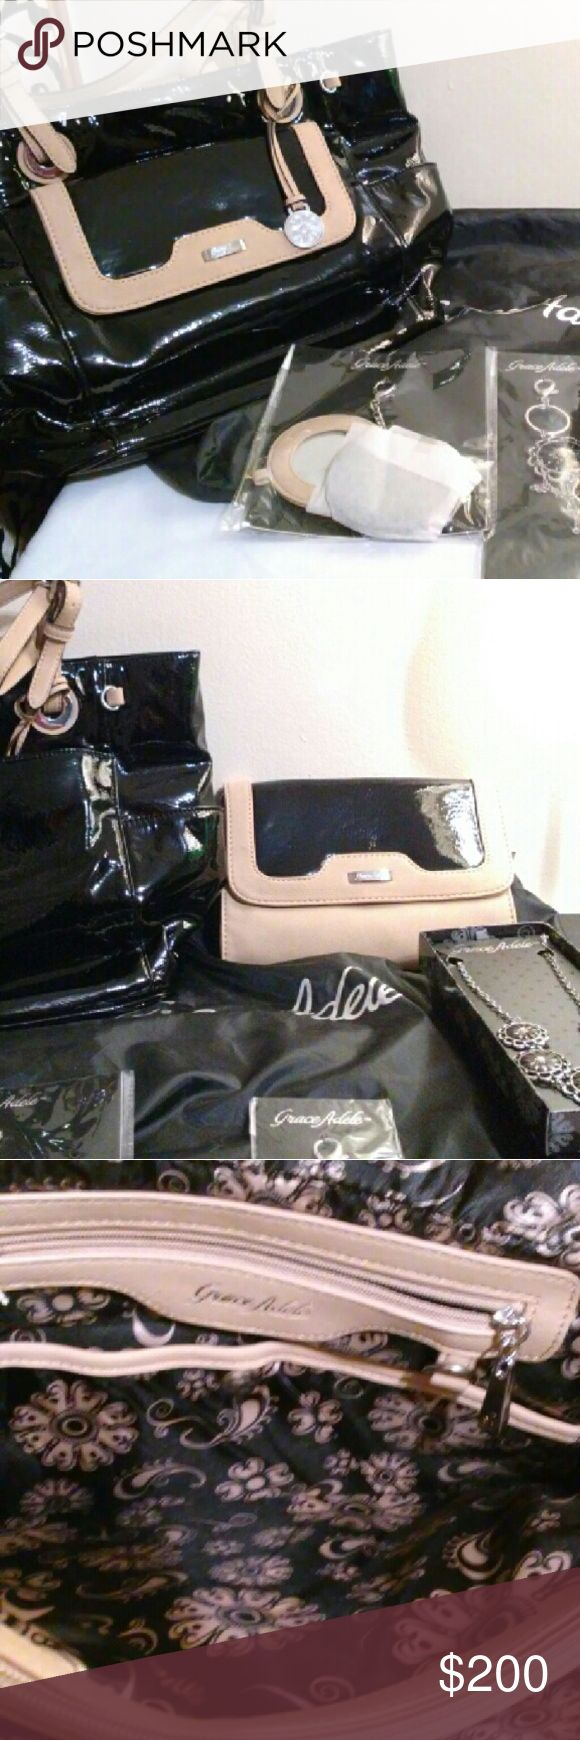 ✨GRACE ADELE TOTE 🌟✨SMALL PURSE N JEWELRY NEW✨ ✨Purse x2 + 🌟Jewelry✨ GRACE EDELE Bags Totes